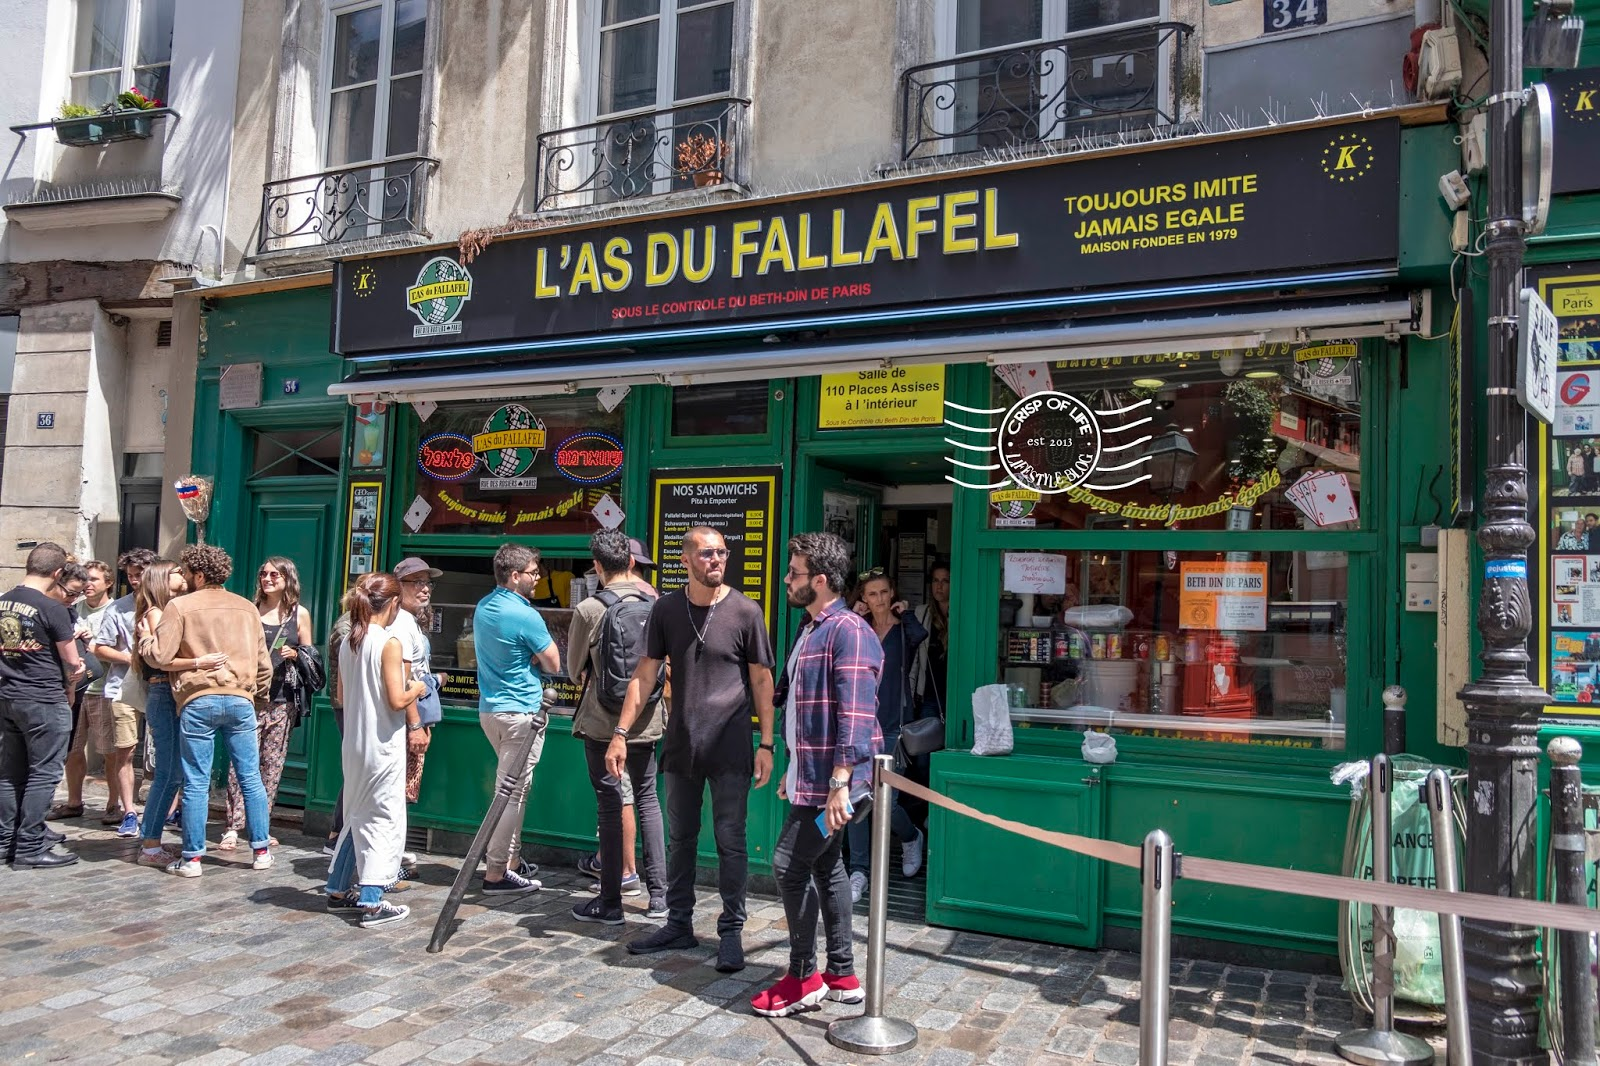 L'As Dus Falafel